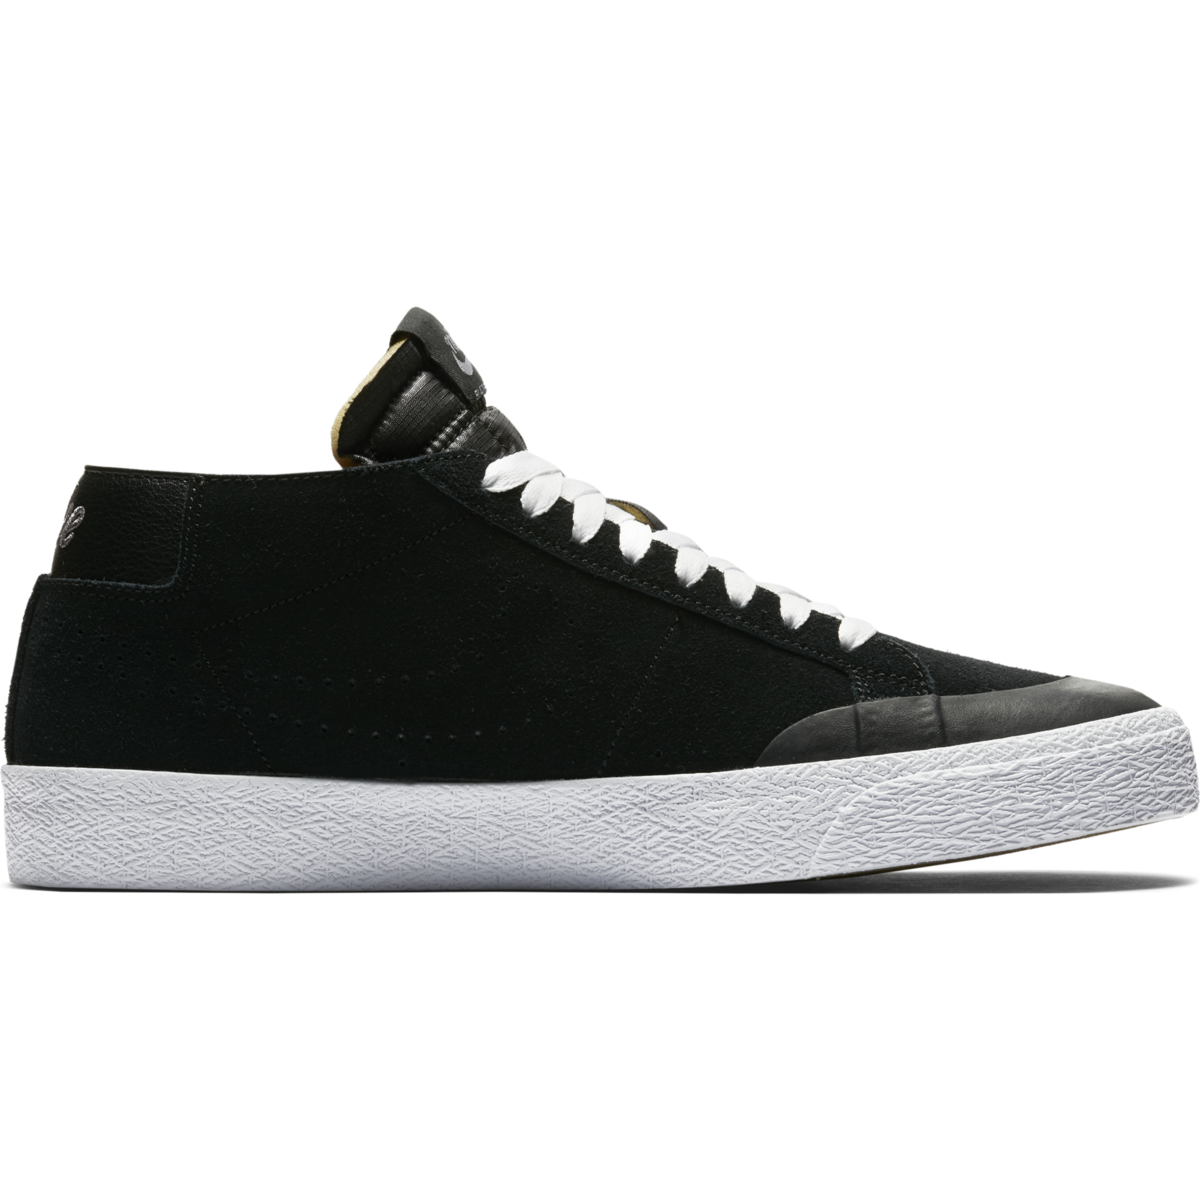 on sale d4395 08247 Nike SB Blazer Chukka XT - Black/Gunsmoke